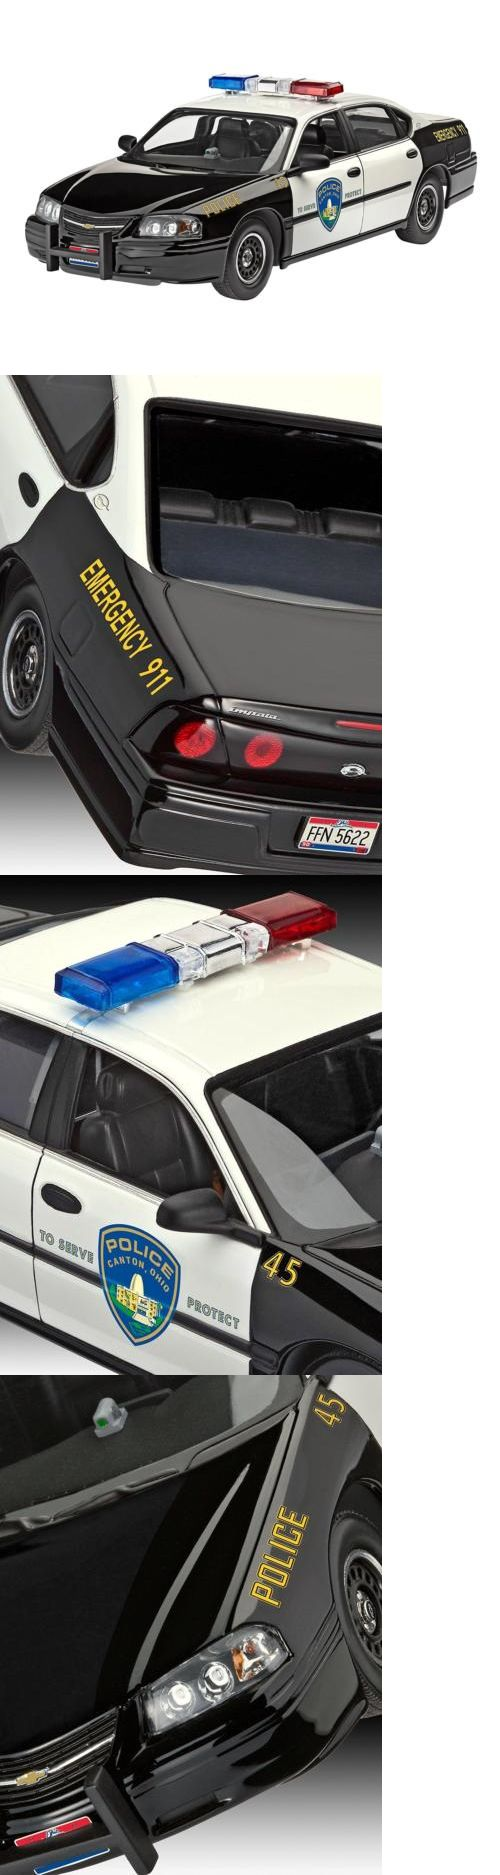 Classic 2581: Model Kit - Chevy Impala Police Car 1:25 Scale -> BUY IT NOW ONLY: $33.56 on eBay!